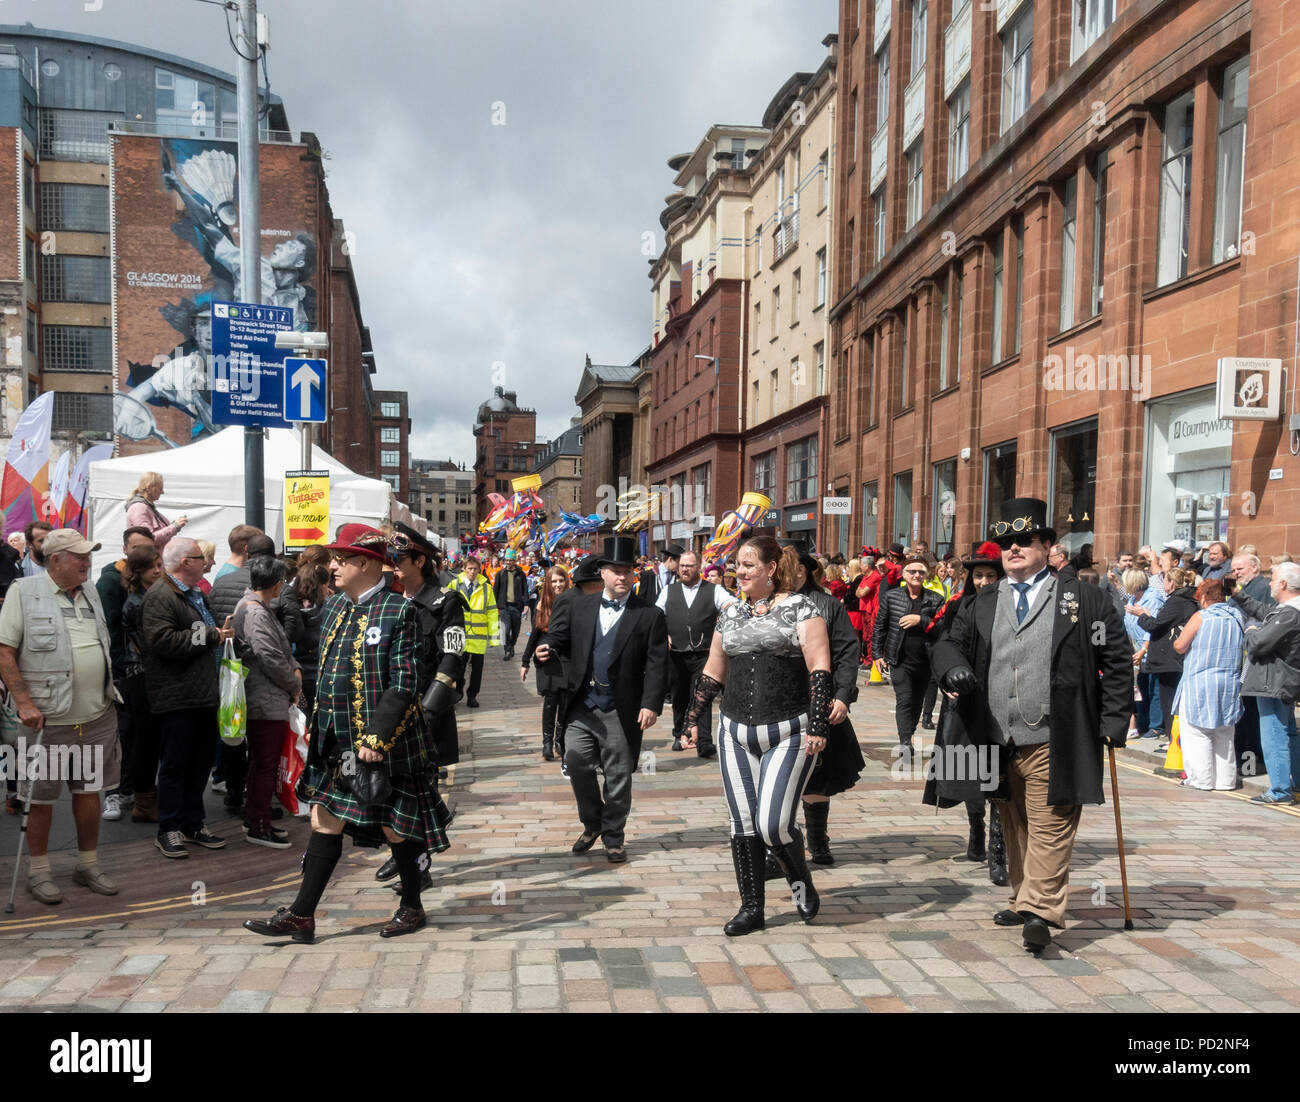 Steampunk fans in full costume in the Carnival Procession of the Merchant City Festival: part of Festival 2018 - Stock Image